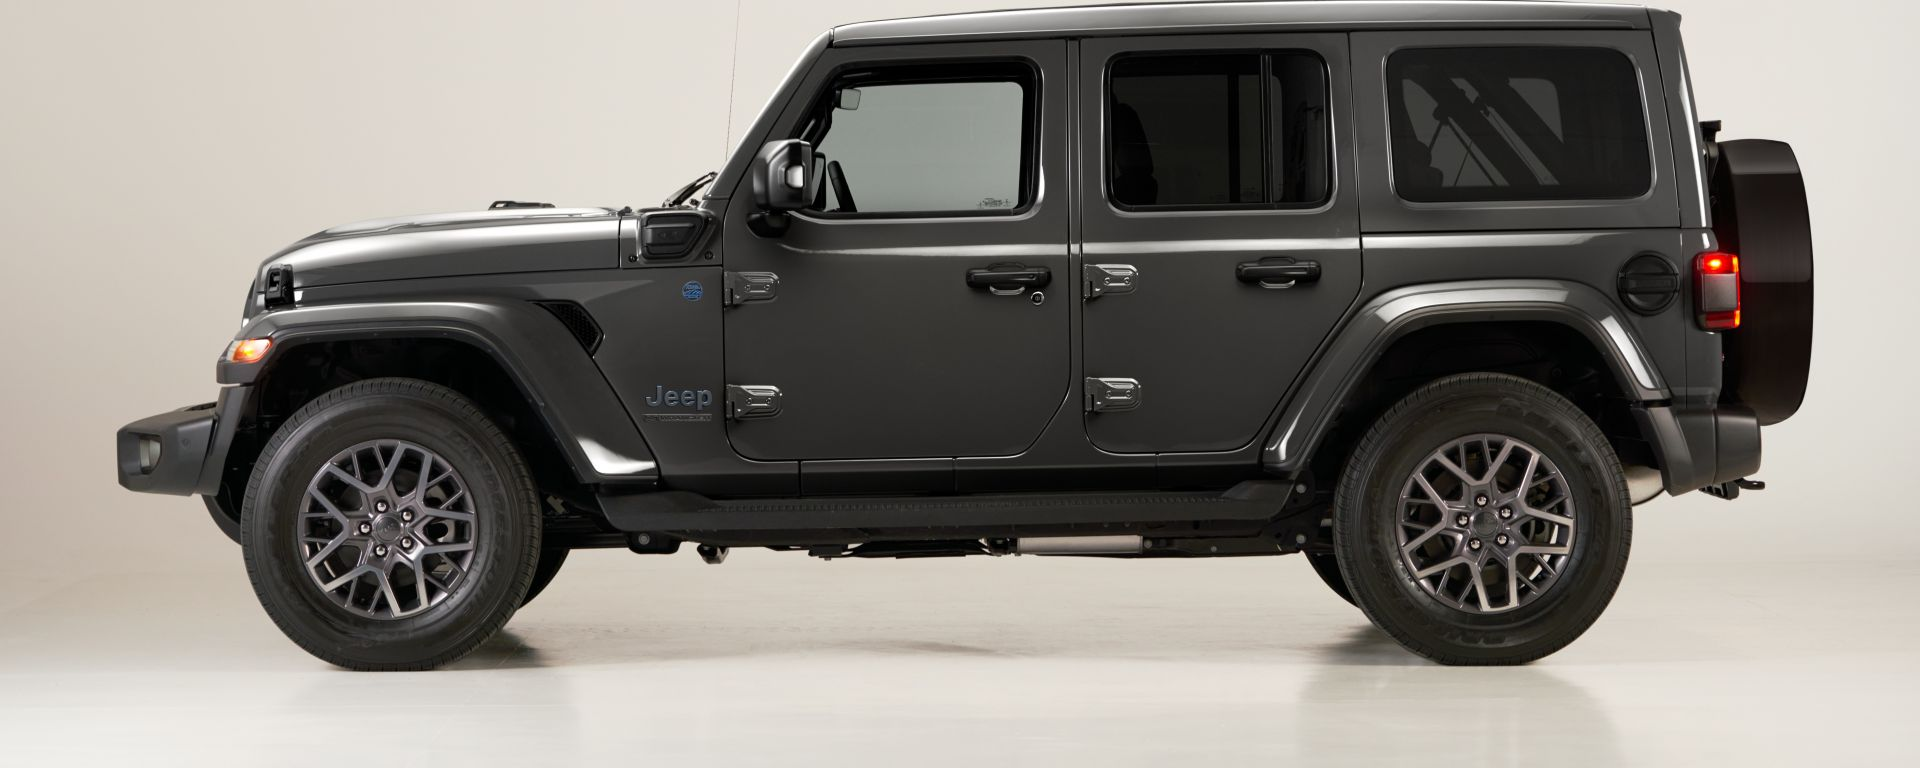 Jeep Wrangler 4xe First Edition 2021: vista laterale